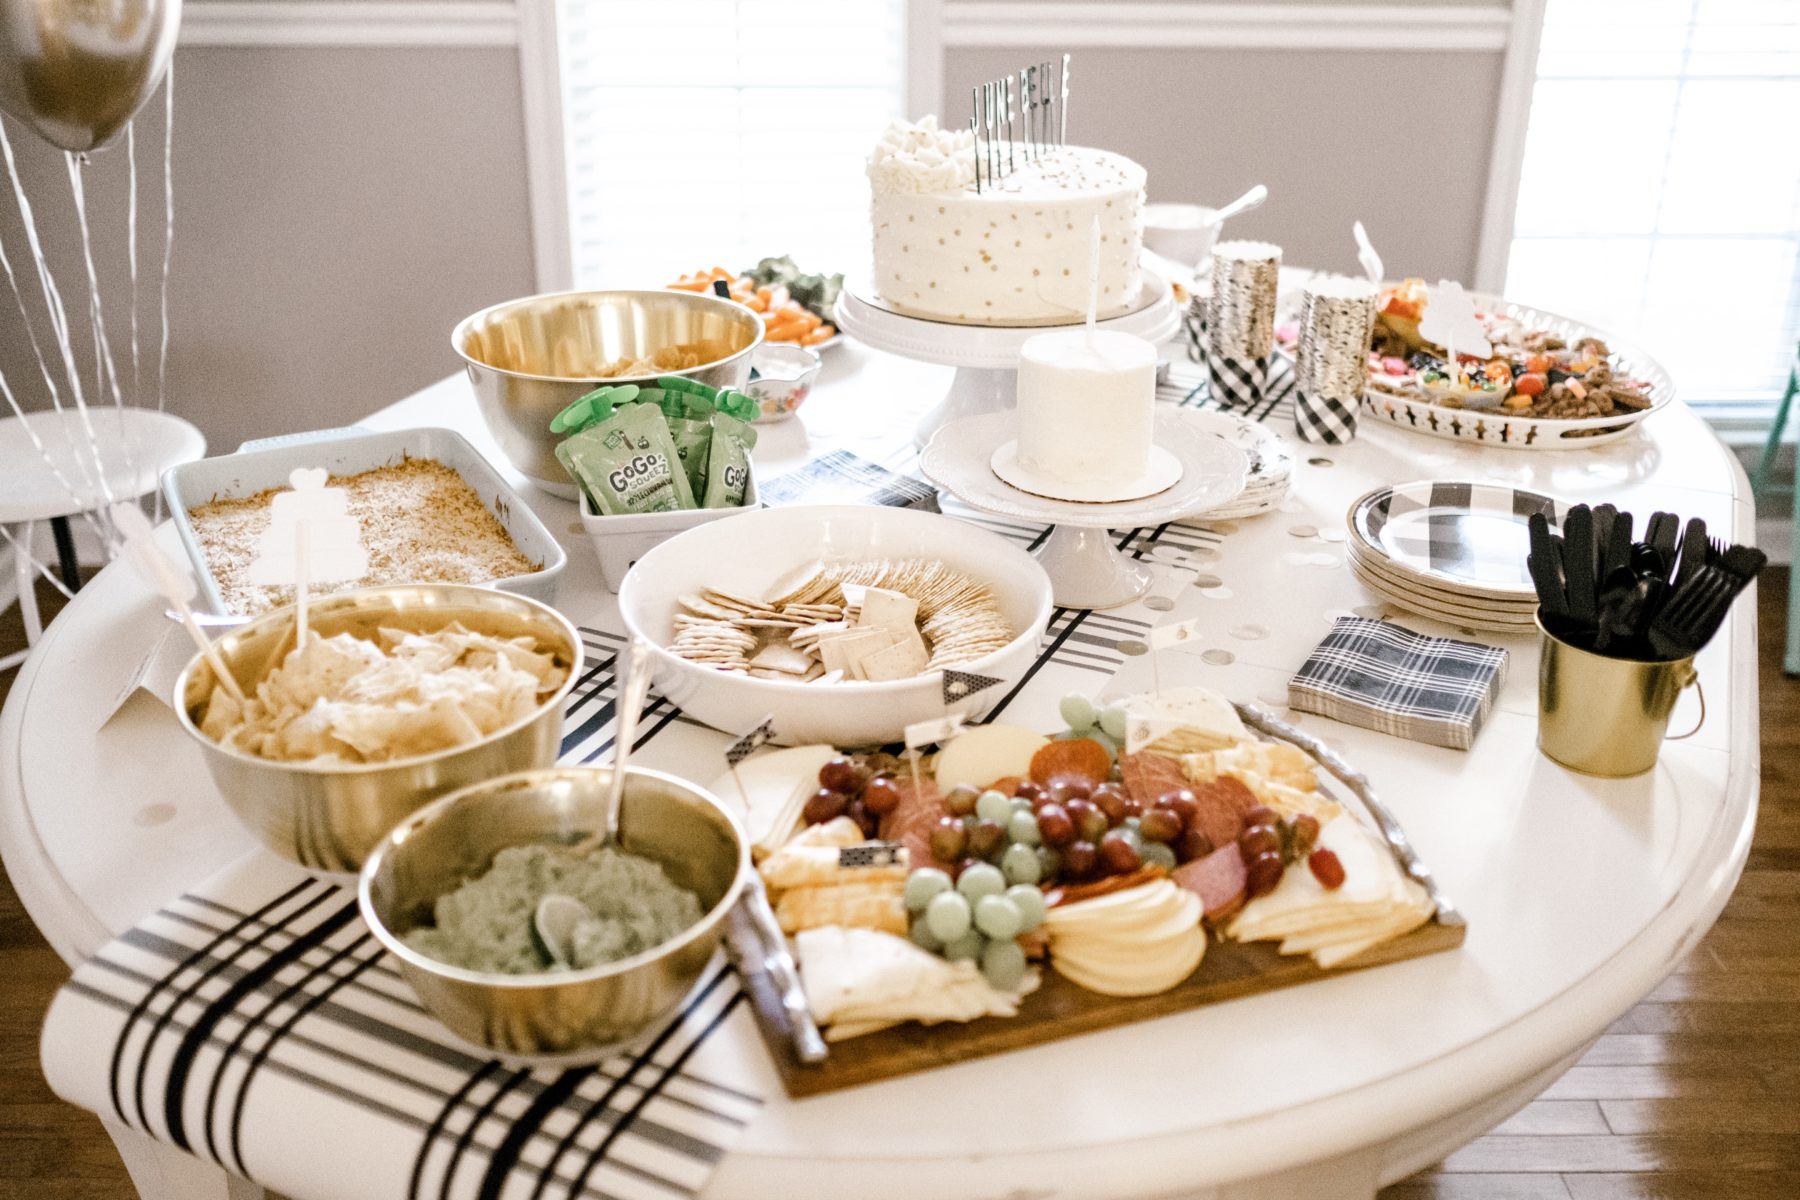 Birthday Cake and Food Table: June Belle's First Birthday Party featured on Nashville Baby Guide